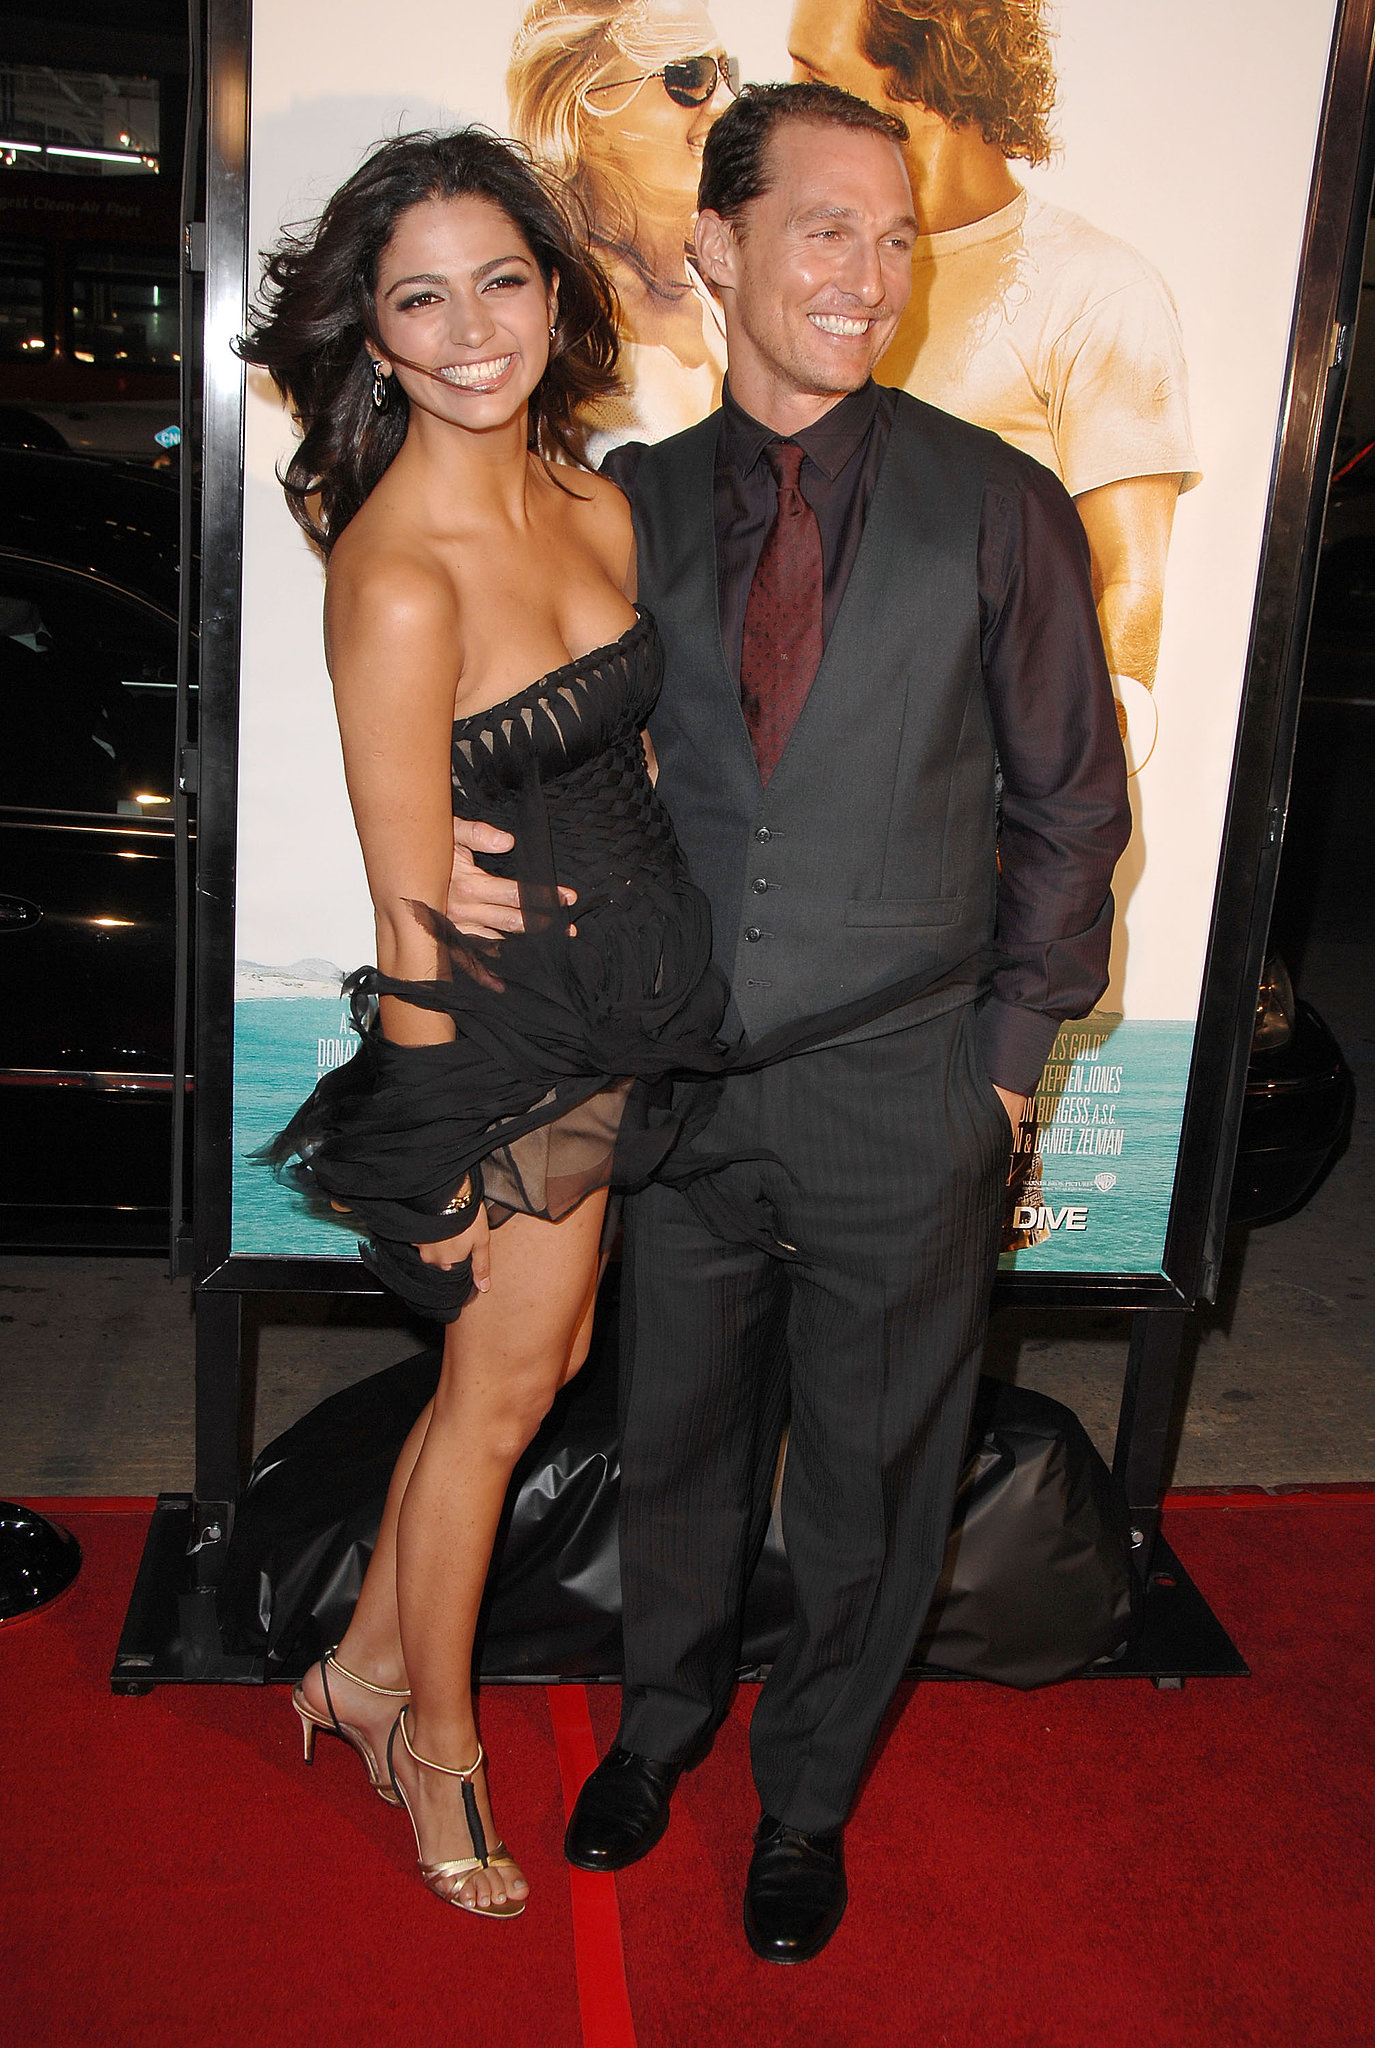 Matthew and Camila smiled big at the LA premiere of Fool's Gold in January 2008.